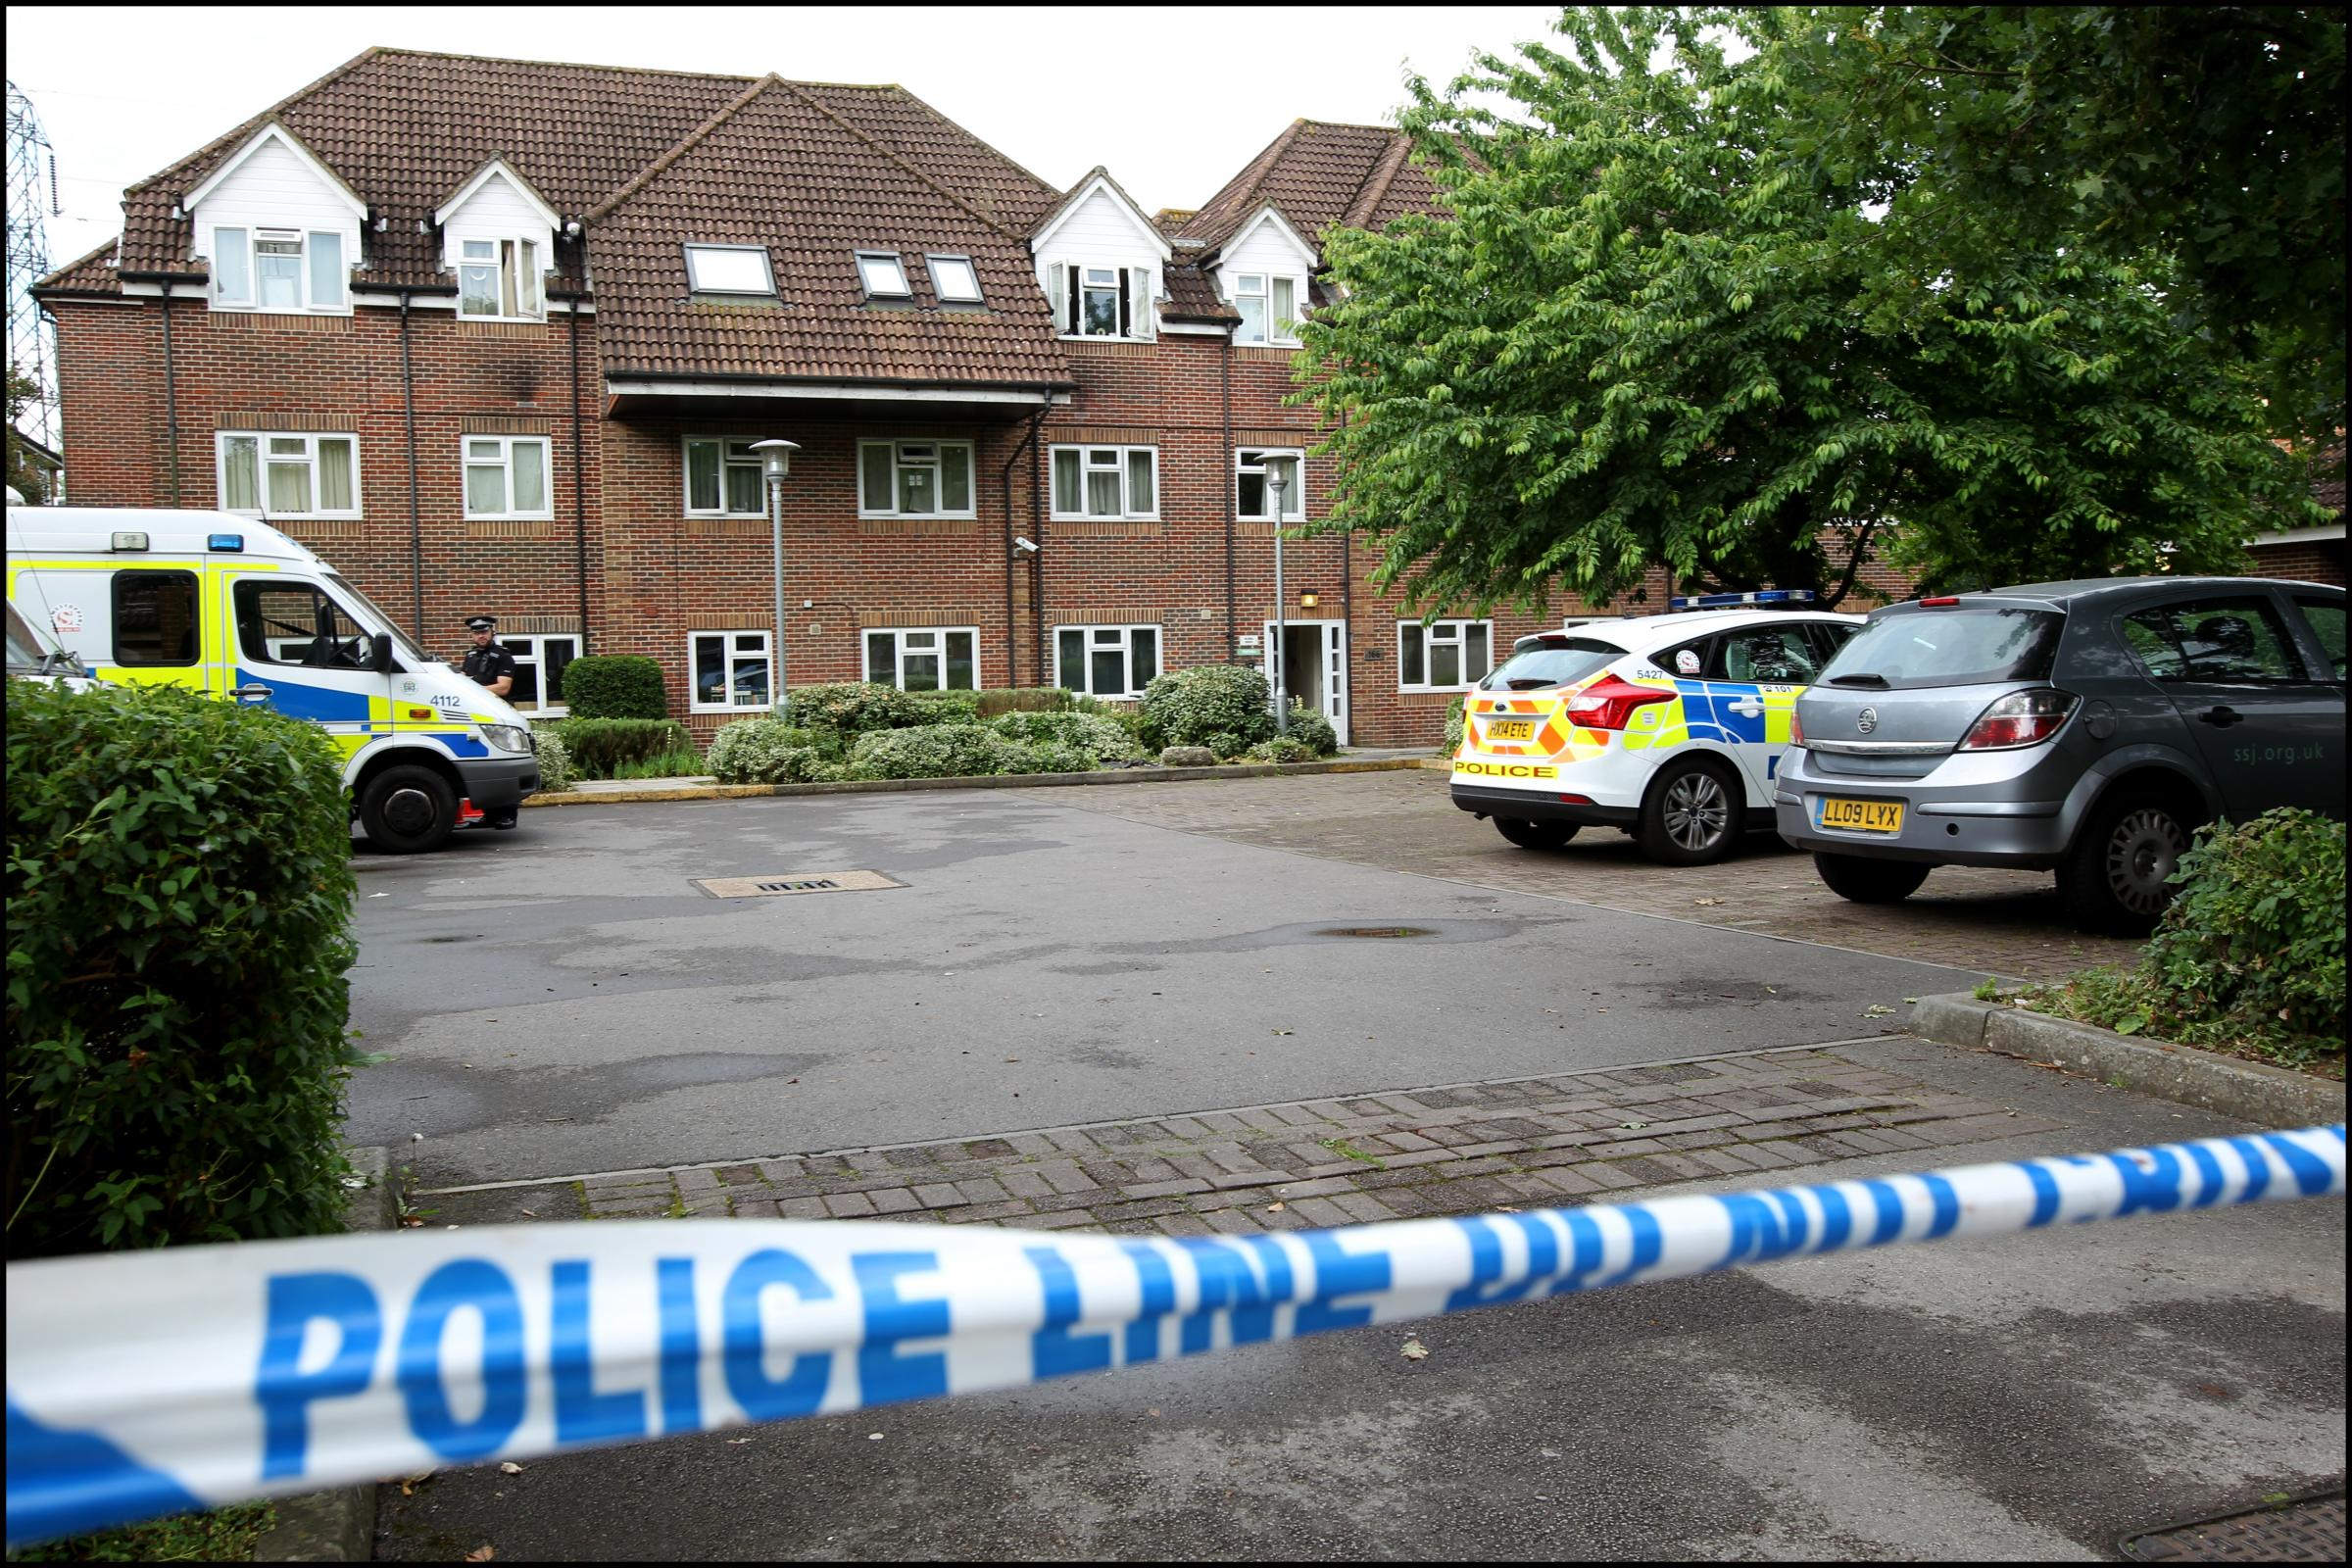 The murder scene at the Society of St James' Jordan House in Millbrook Road East, Southampton